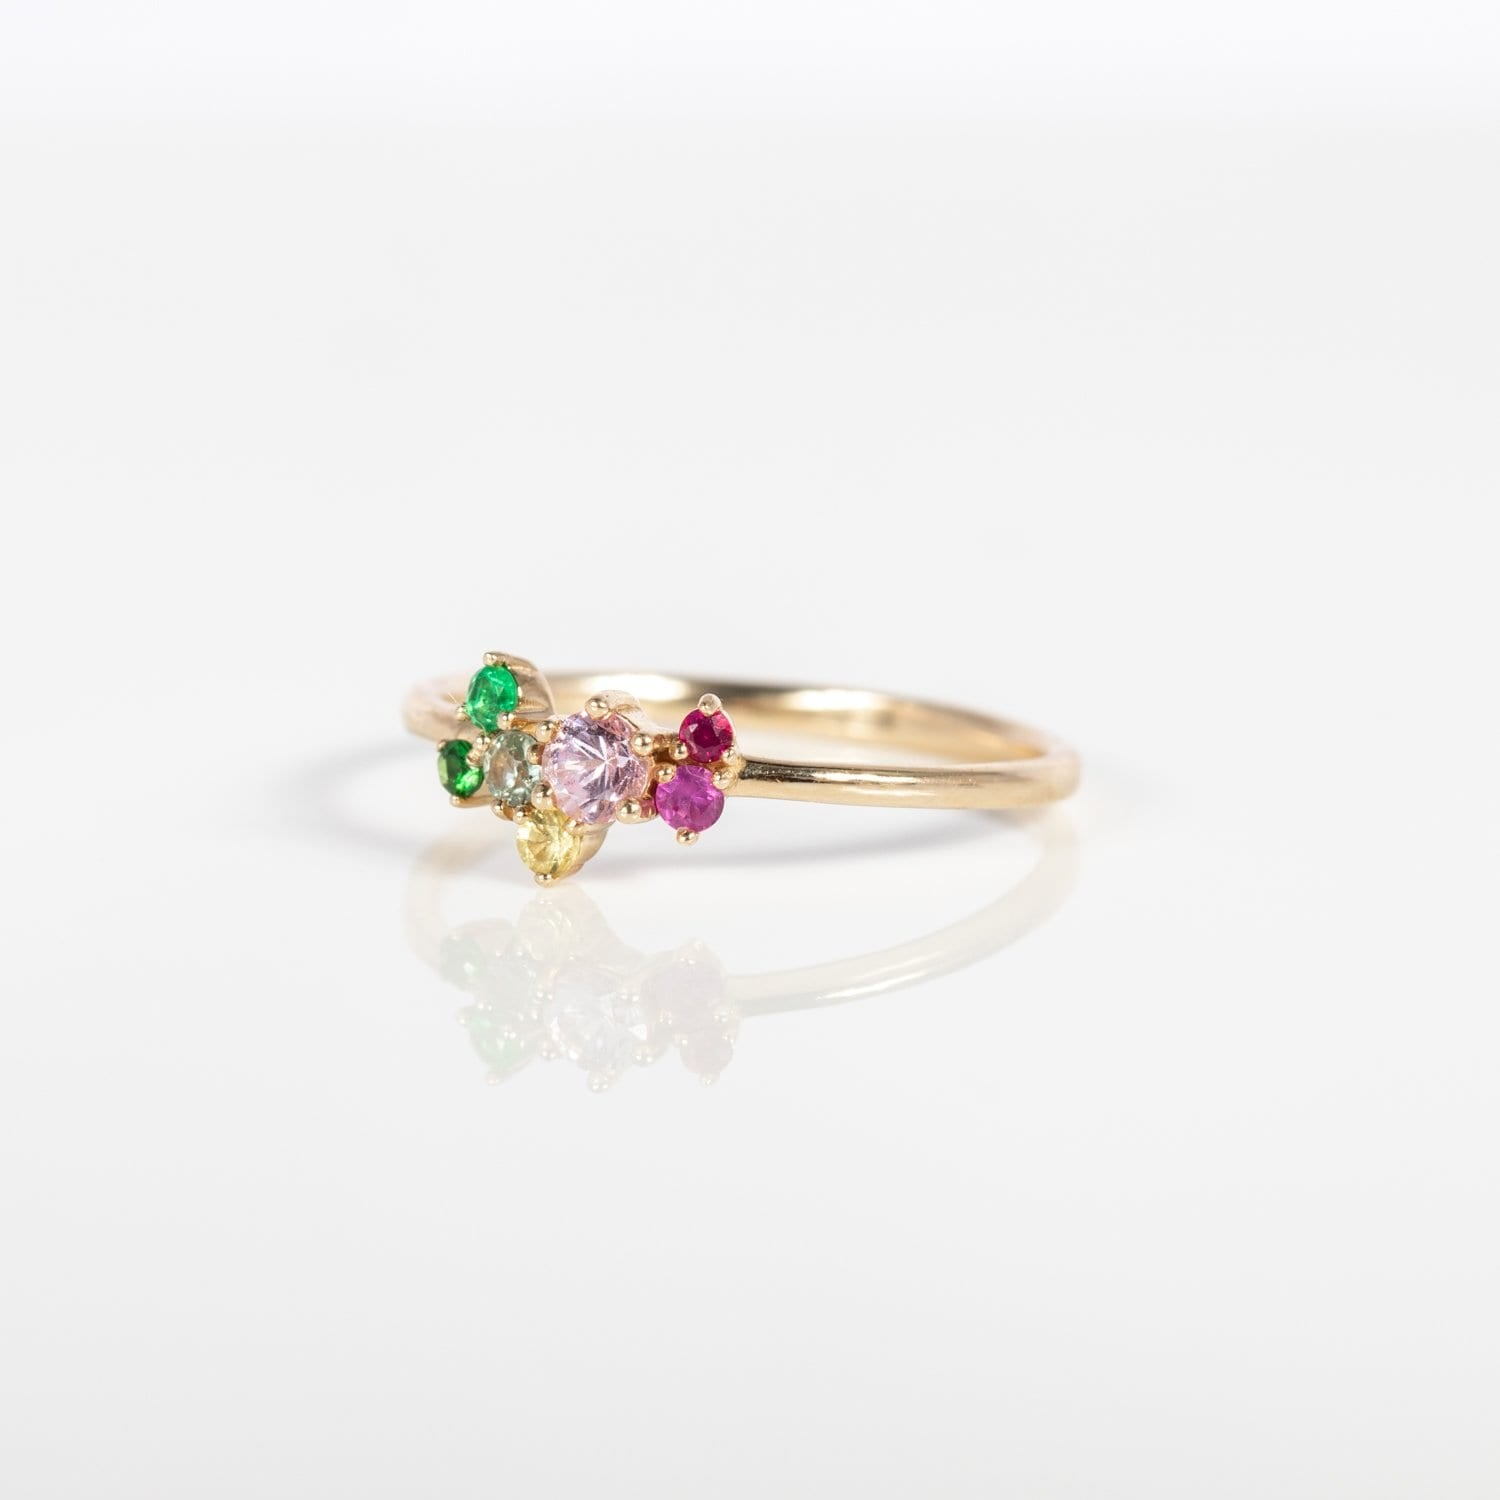 Spirituelle Multi Colour Cluster Ring - 14k Yellow Gold, Garnet, Emerald, Sapphire, Ruby